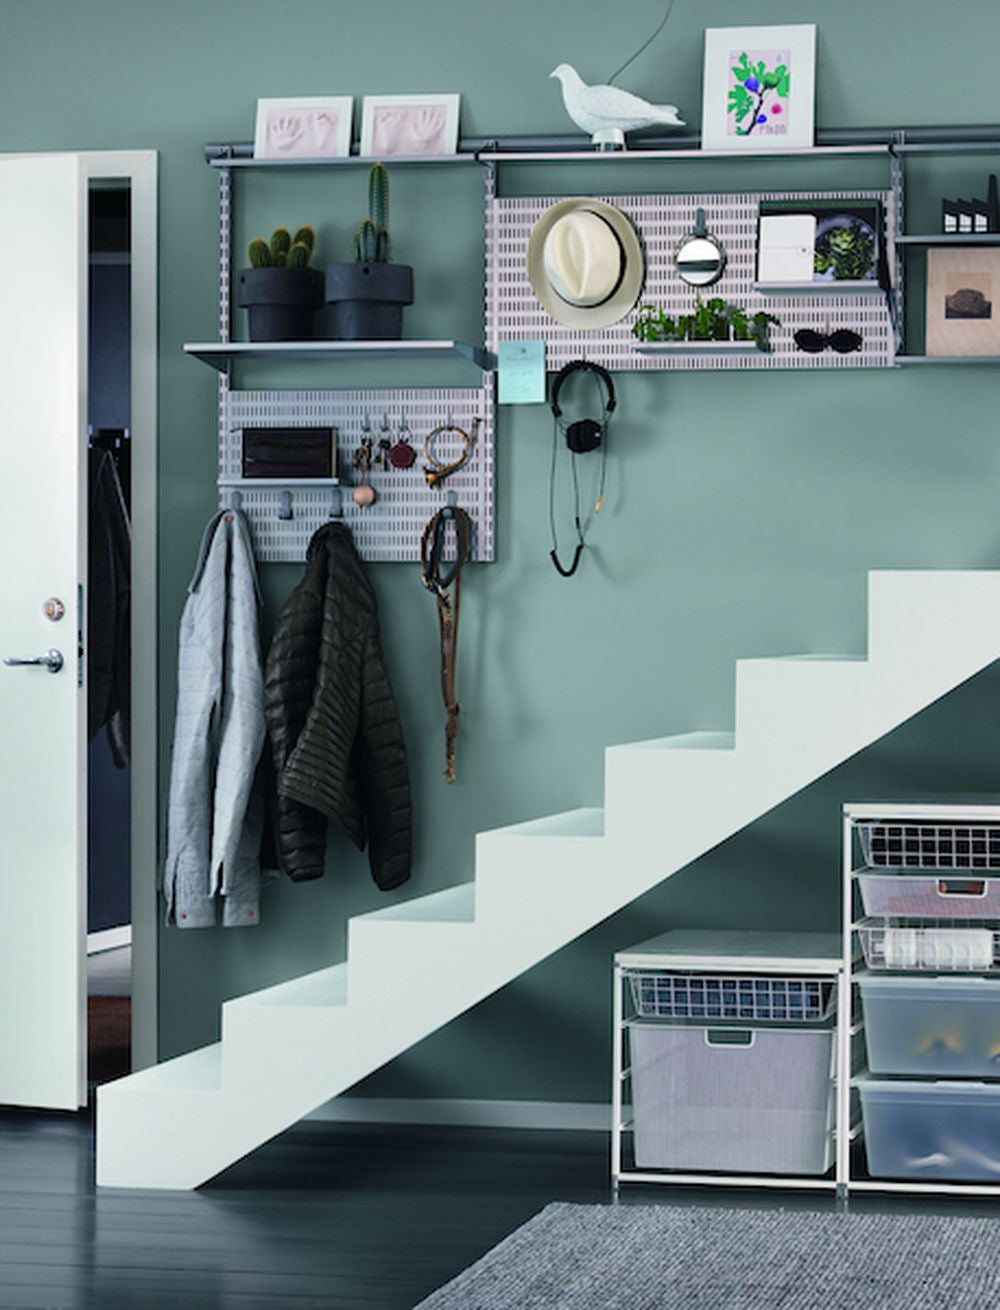 Function & style with Elfa shelving